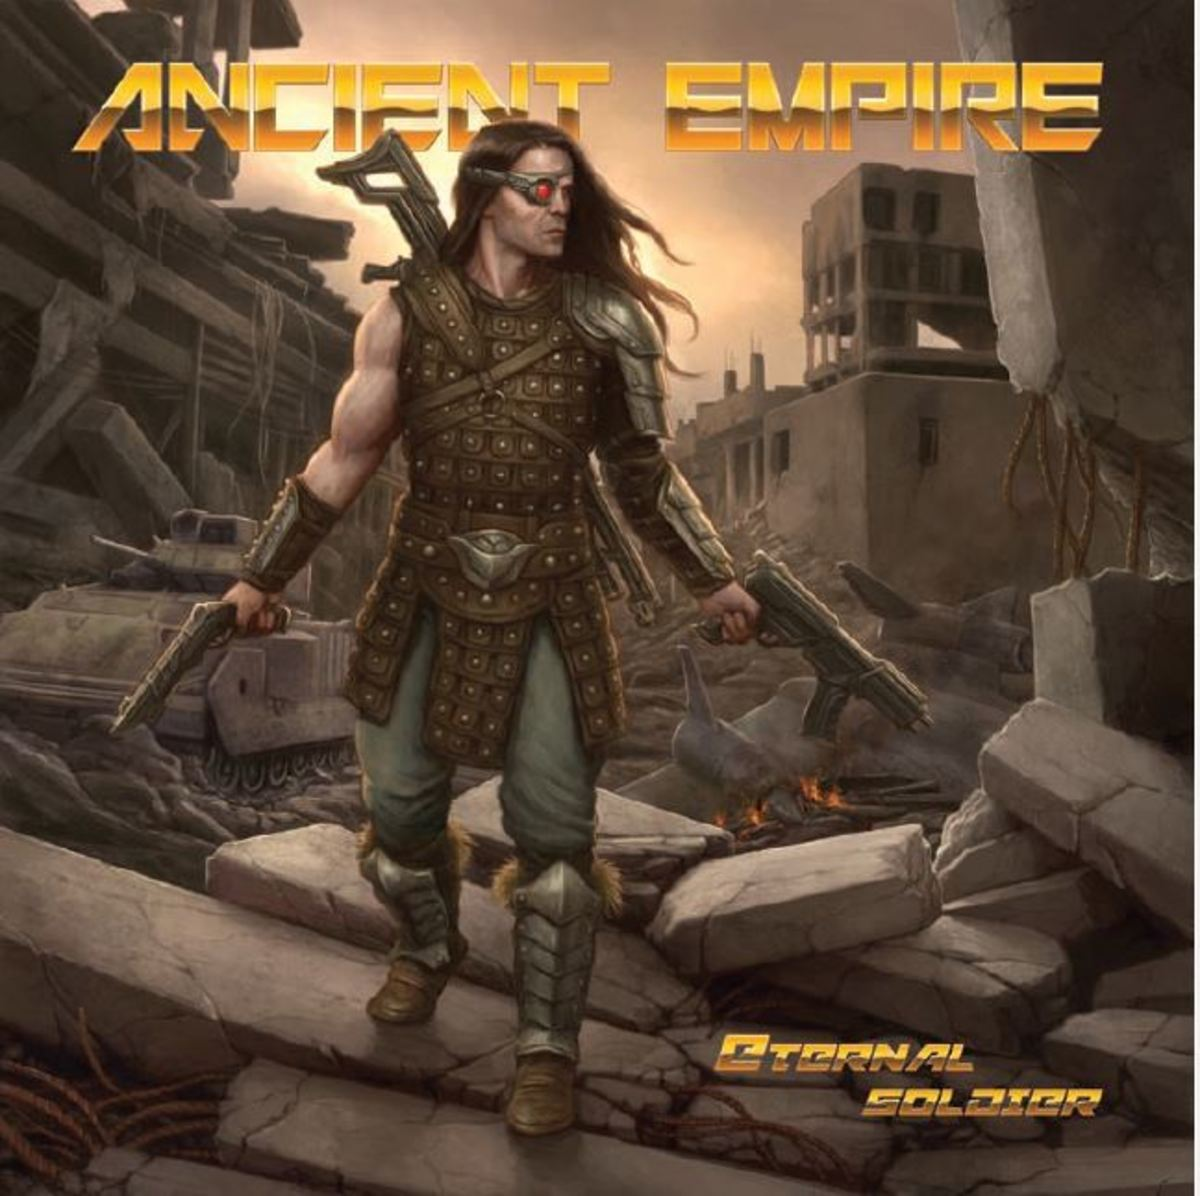 """Eternal Soldier"" CD cover"